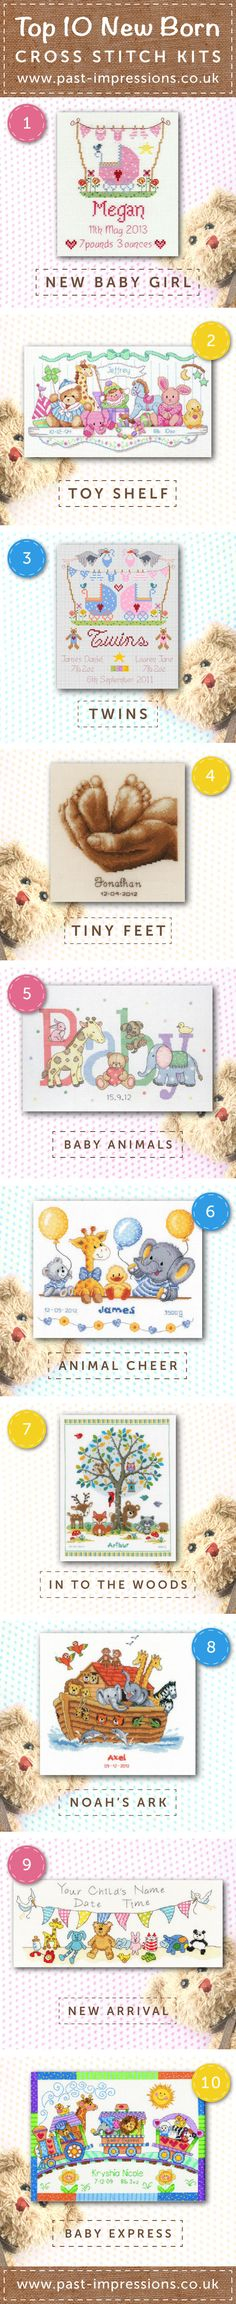 10 of the best newborn/birthing samplers cross stitch kits. Perfect for newborns and adding to nurseries. Shop them all on Past impressions.